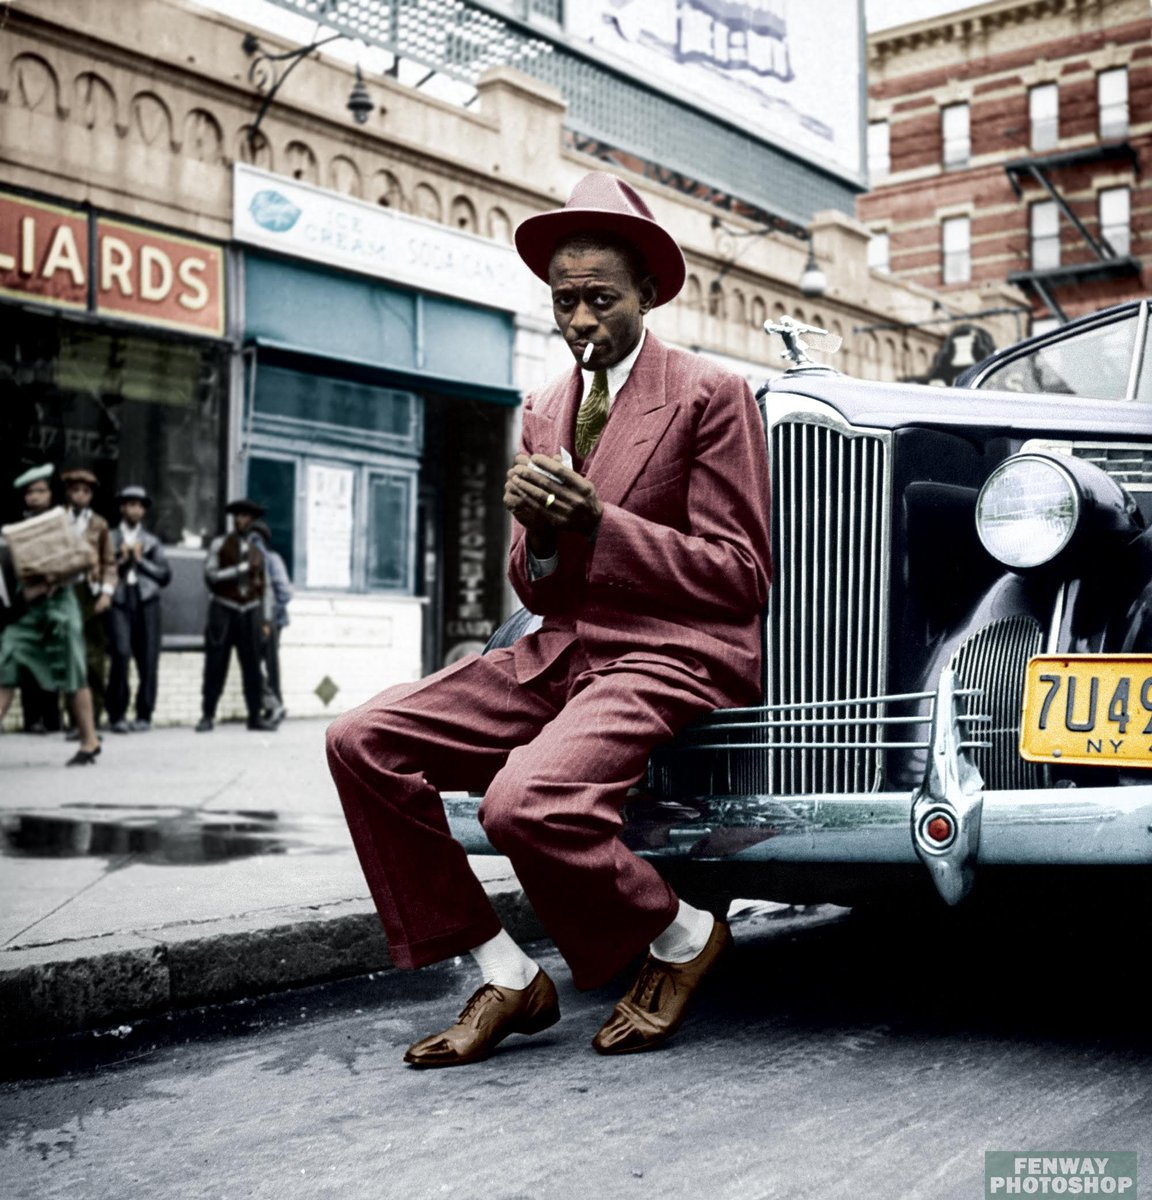 Satchel Paige, Harlem, 1941 https://t.co/dIsp7eAWr9